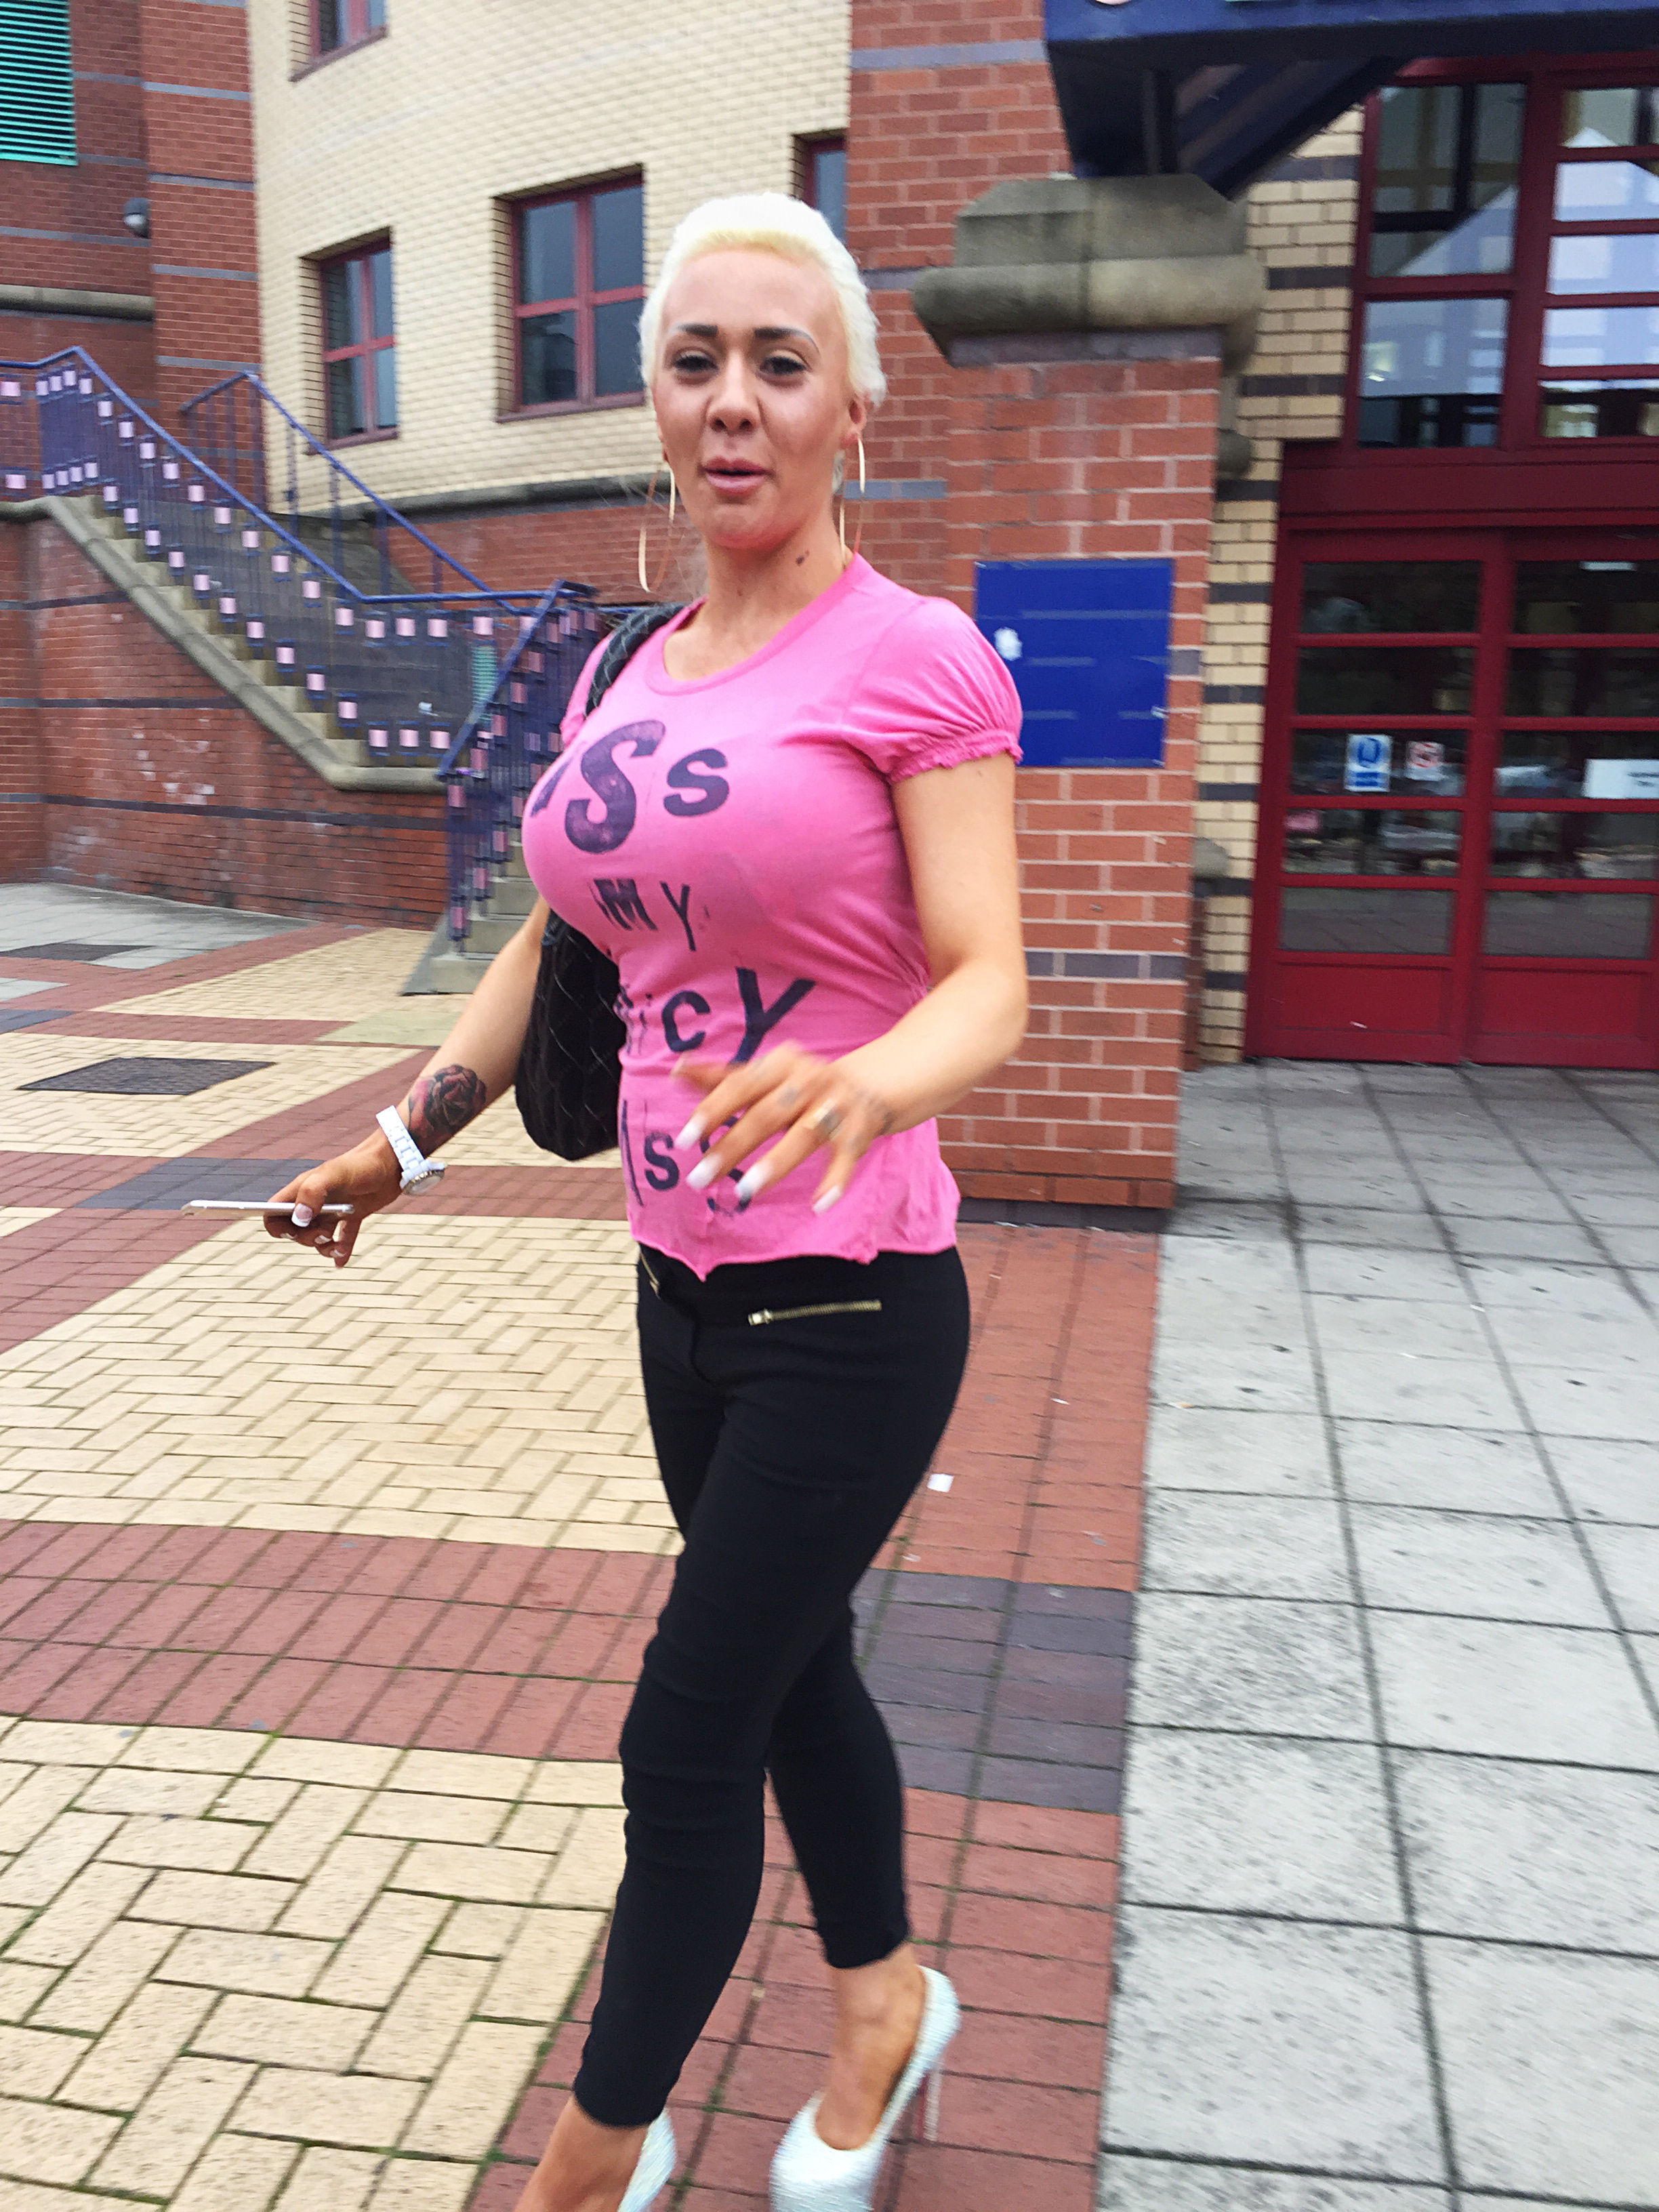 Josie Cunningham Declares Shes Going To Be The Biggest Porn Star In The UK josie2